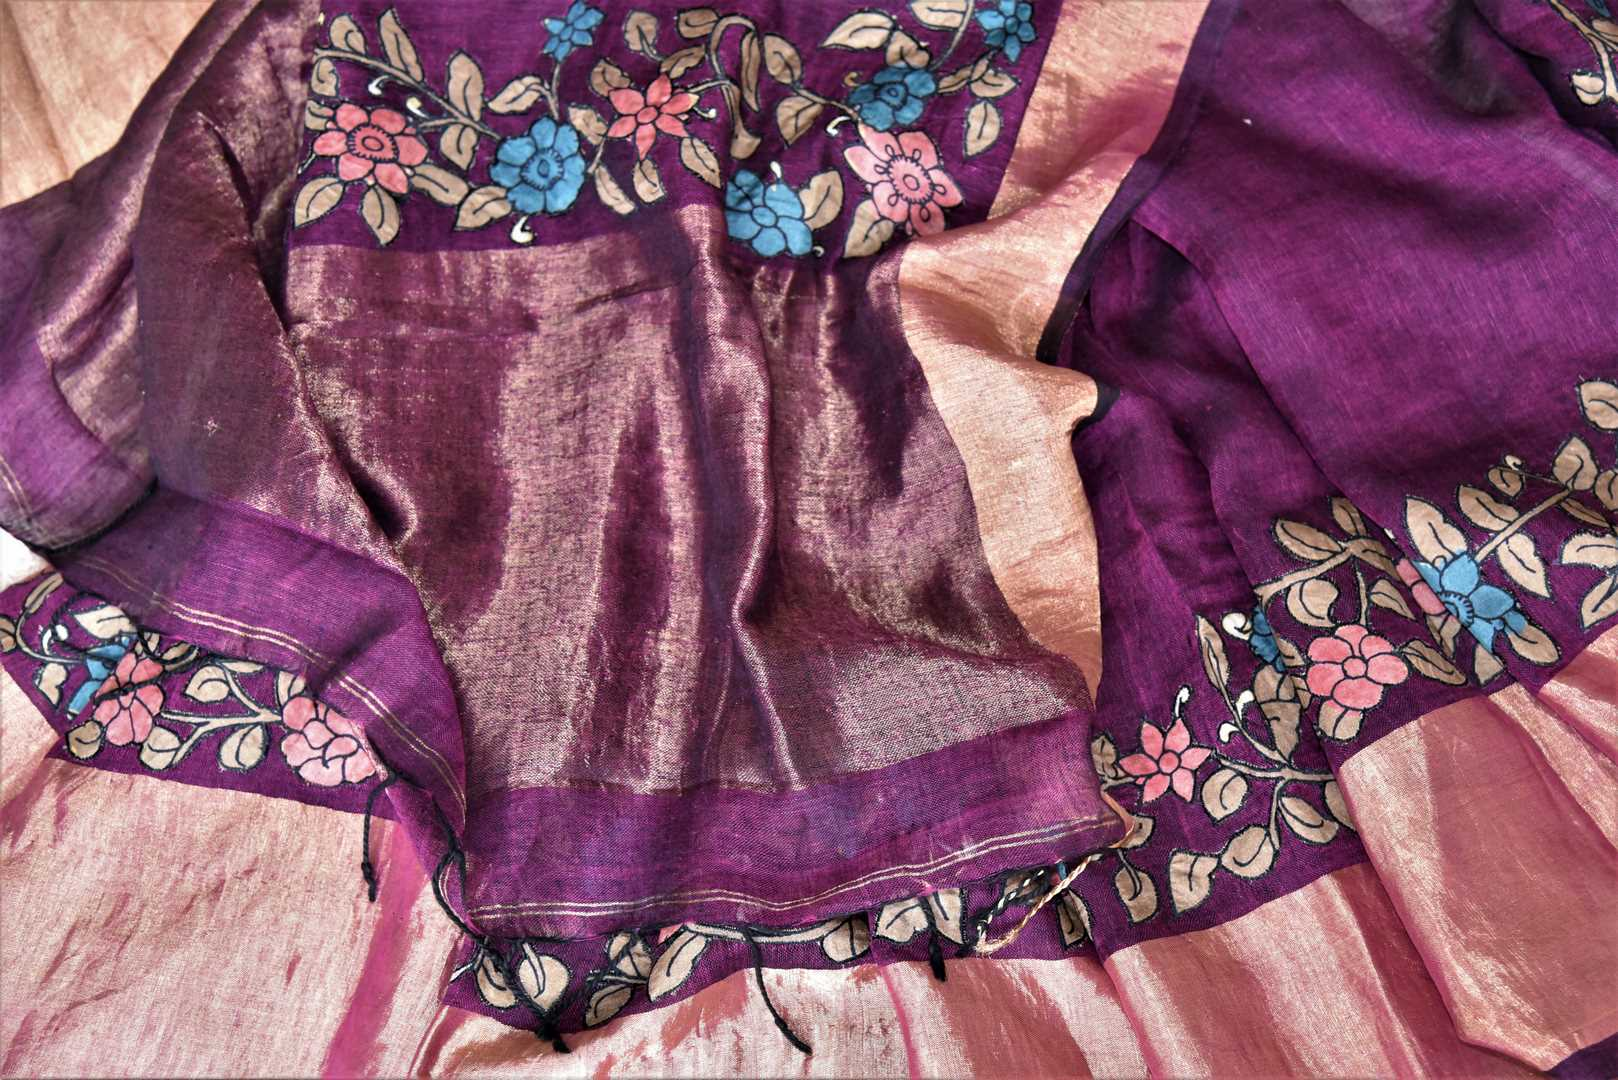 Buy purple linen sari online in USA with Kalamkari applique and golden zari border. Be the talk of the occasions in exquisite linen sarees, embroidered saris from Pure Elegance Indian fashion store in USA. -details